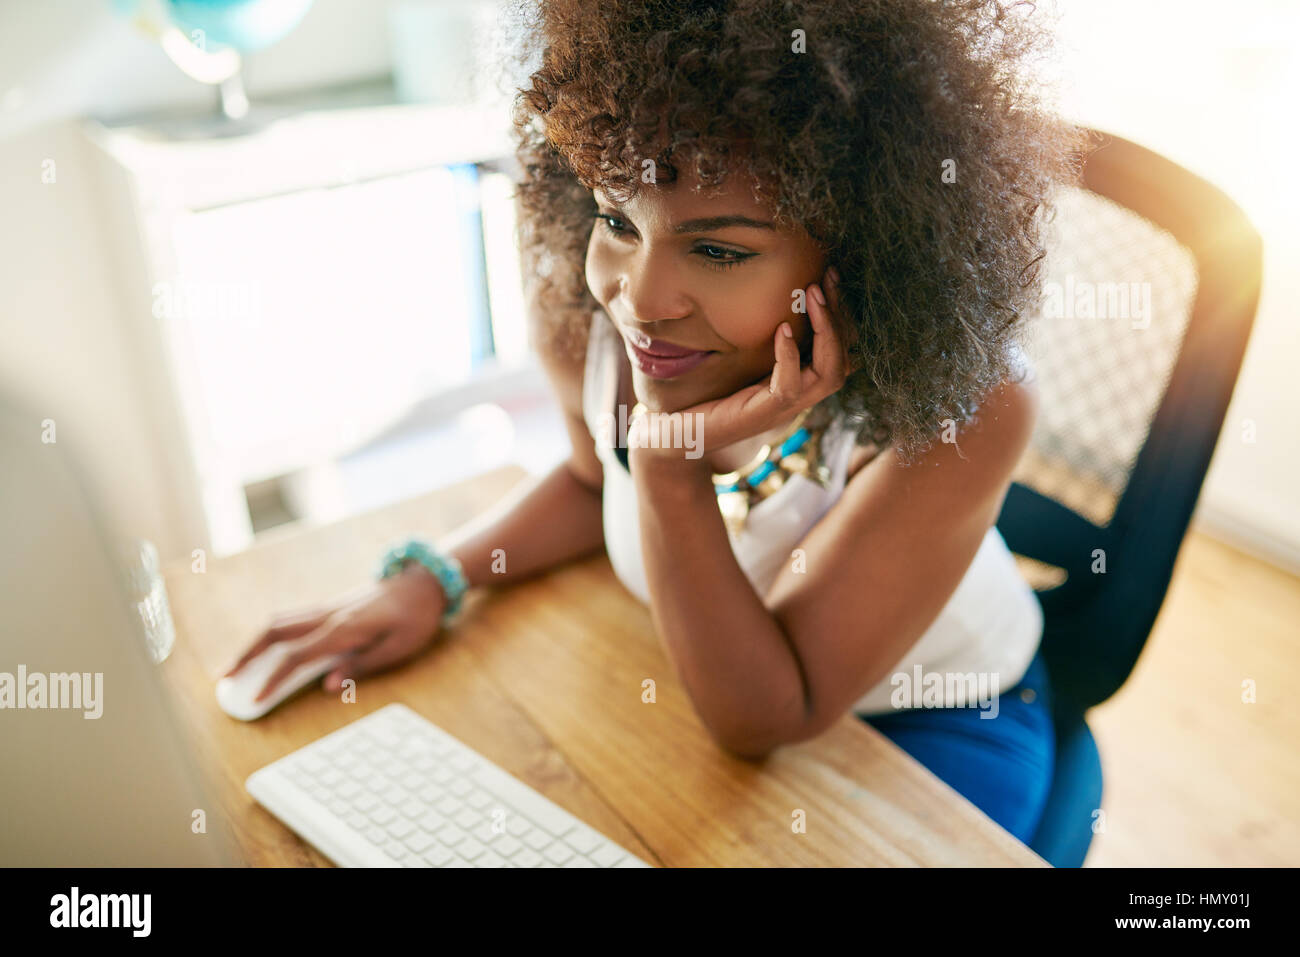 Young pretty afro-american girl working on pc and smiling on blurred inside background. - Stock Image